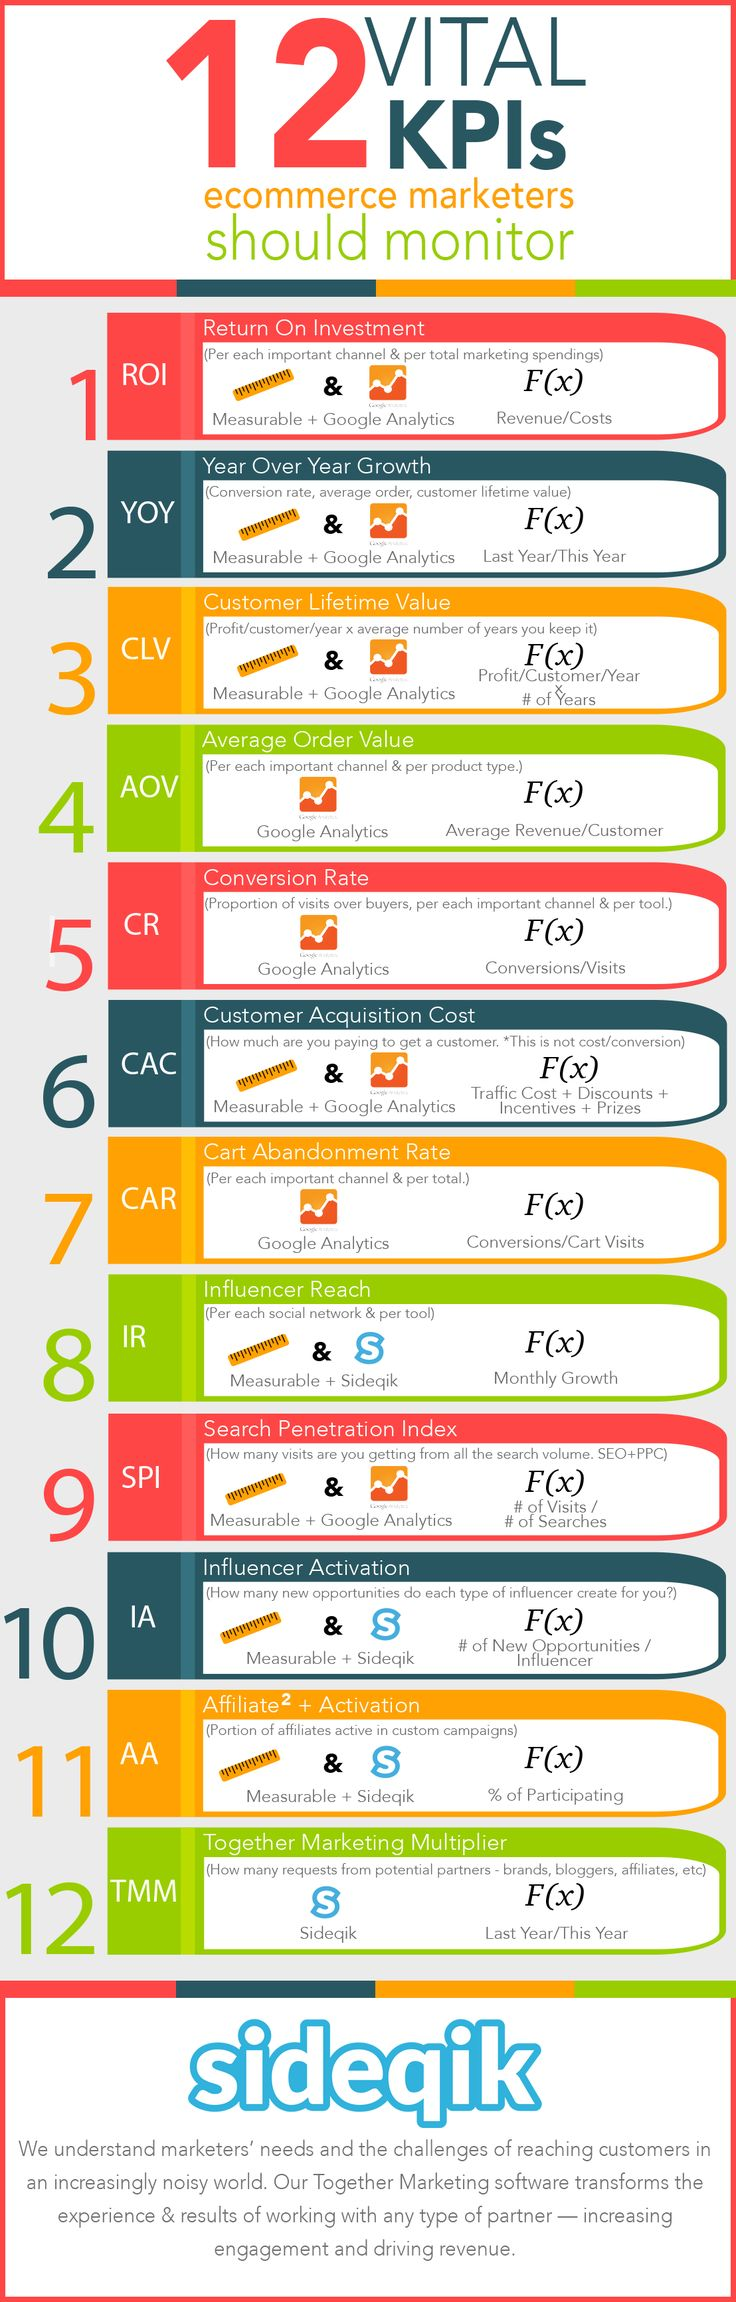 12 Vital KPIs Ecommerce Marketers Should Monitor (Infographic) - Good reminder to save